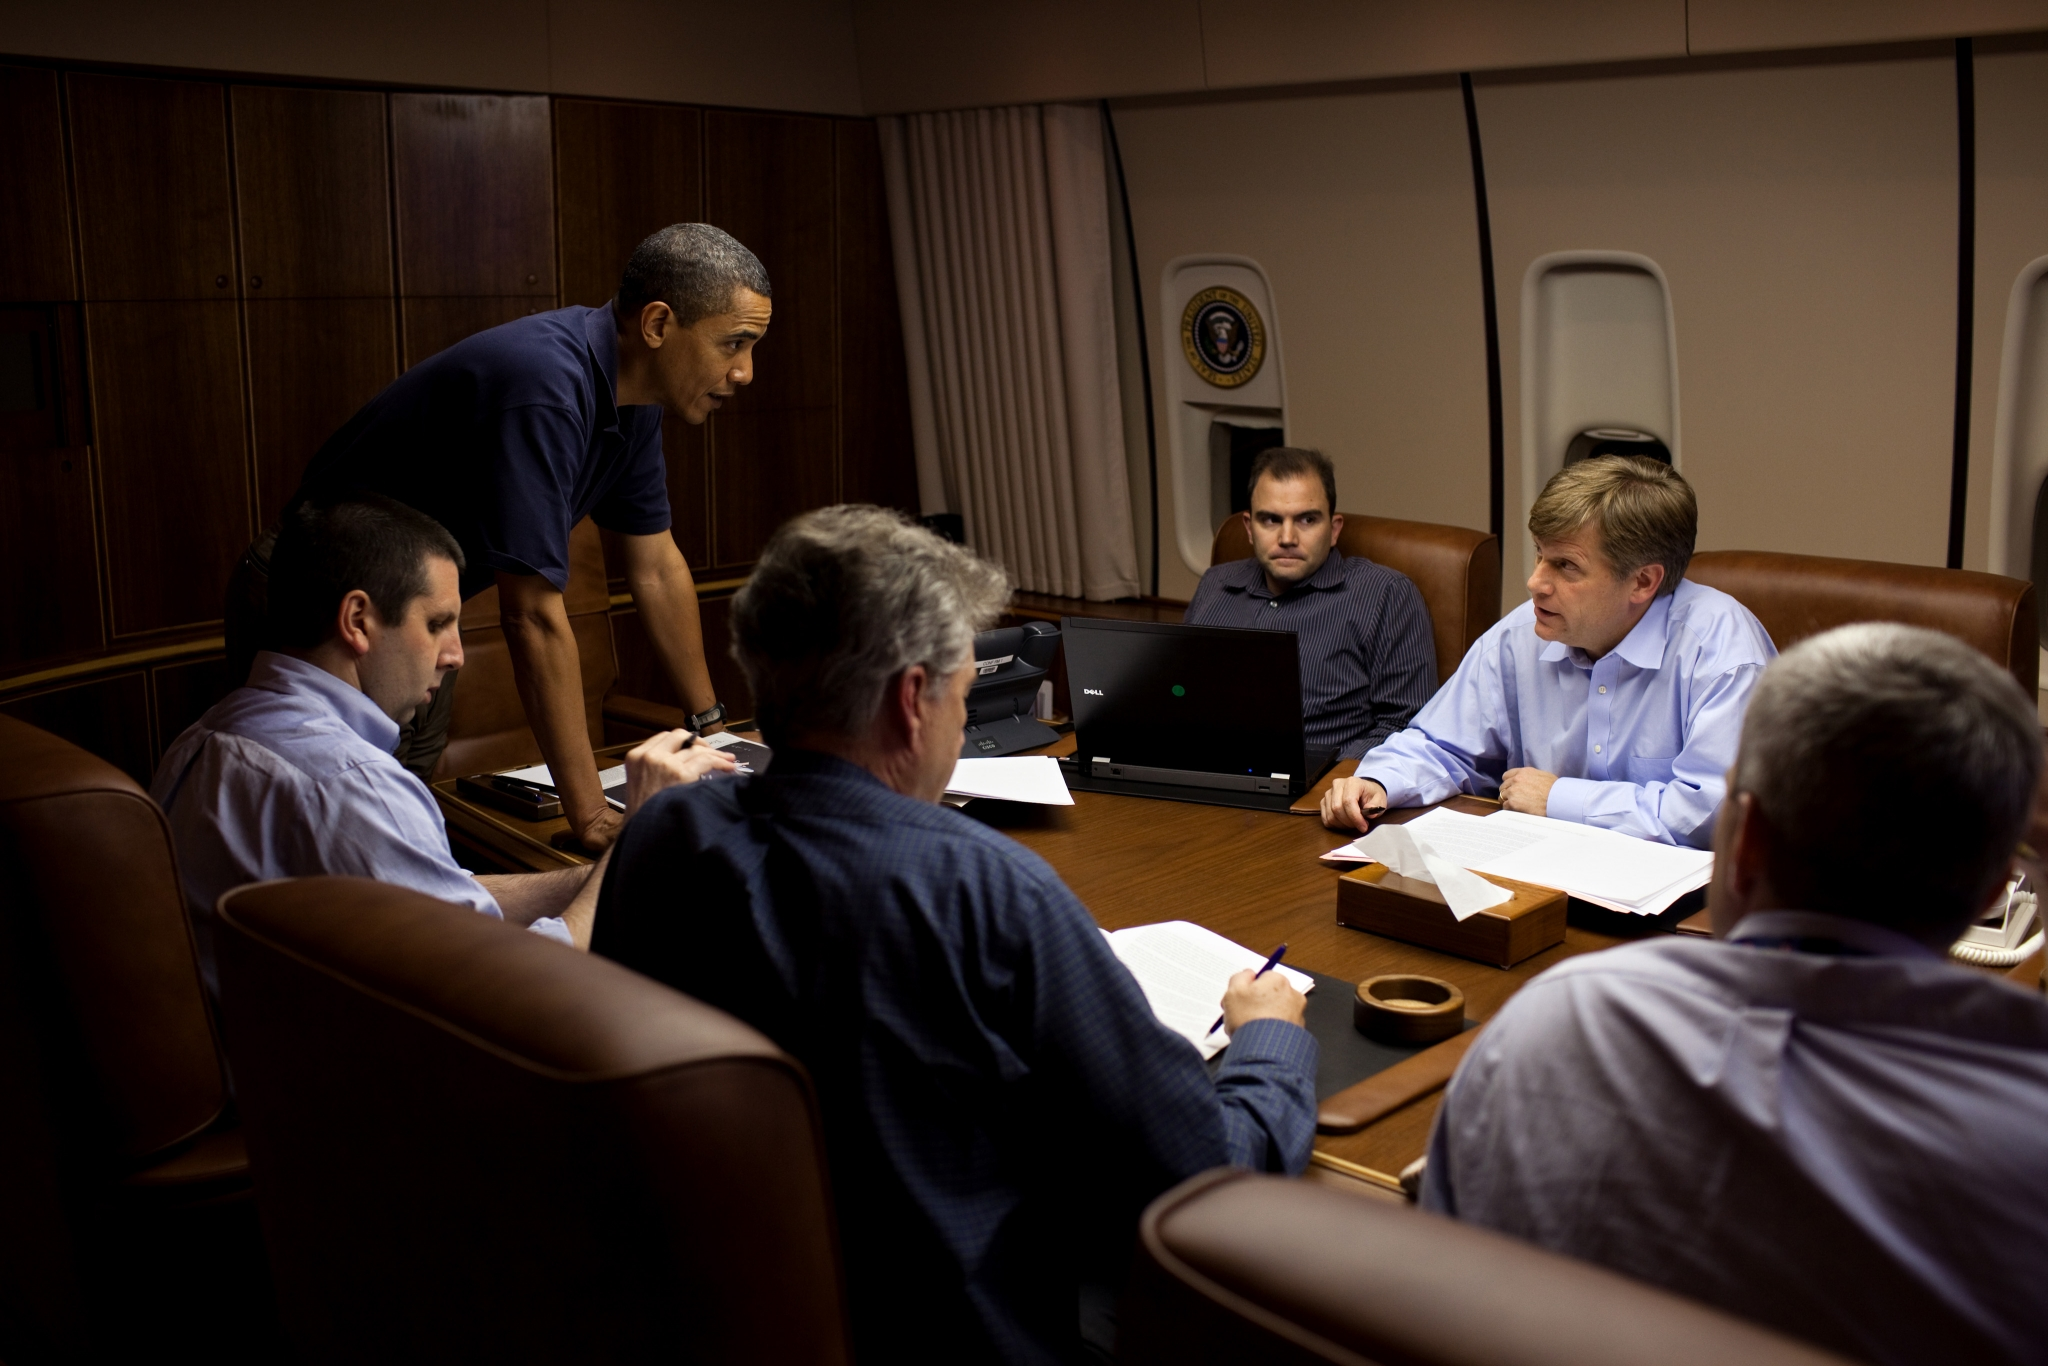 President Barack Obama is briefed by, from left, NSC Chief of Staff Mark Lippert, Former U.S. Ambassador to Russia William J. Burns, Deputy National Security Advisor for Strategic Communications Ben Rhodes, NSC Senior Director for Russian Affairs Mike McFaul, and Deputy National Security Advisor for Strategic Communications Denis McDonough, in the Conference Room aboard Air Force One, during a flight to Moscow, Russia, July 5, 2009. (Official White House Photo by Pete Souza)